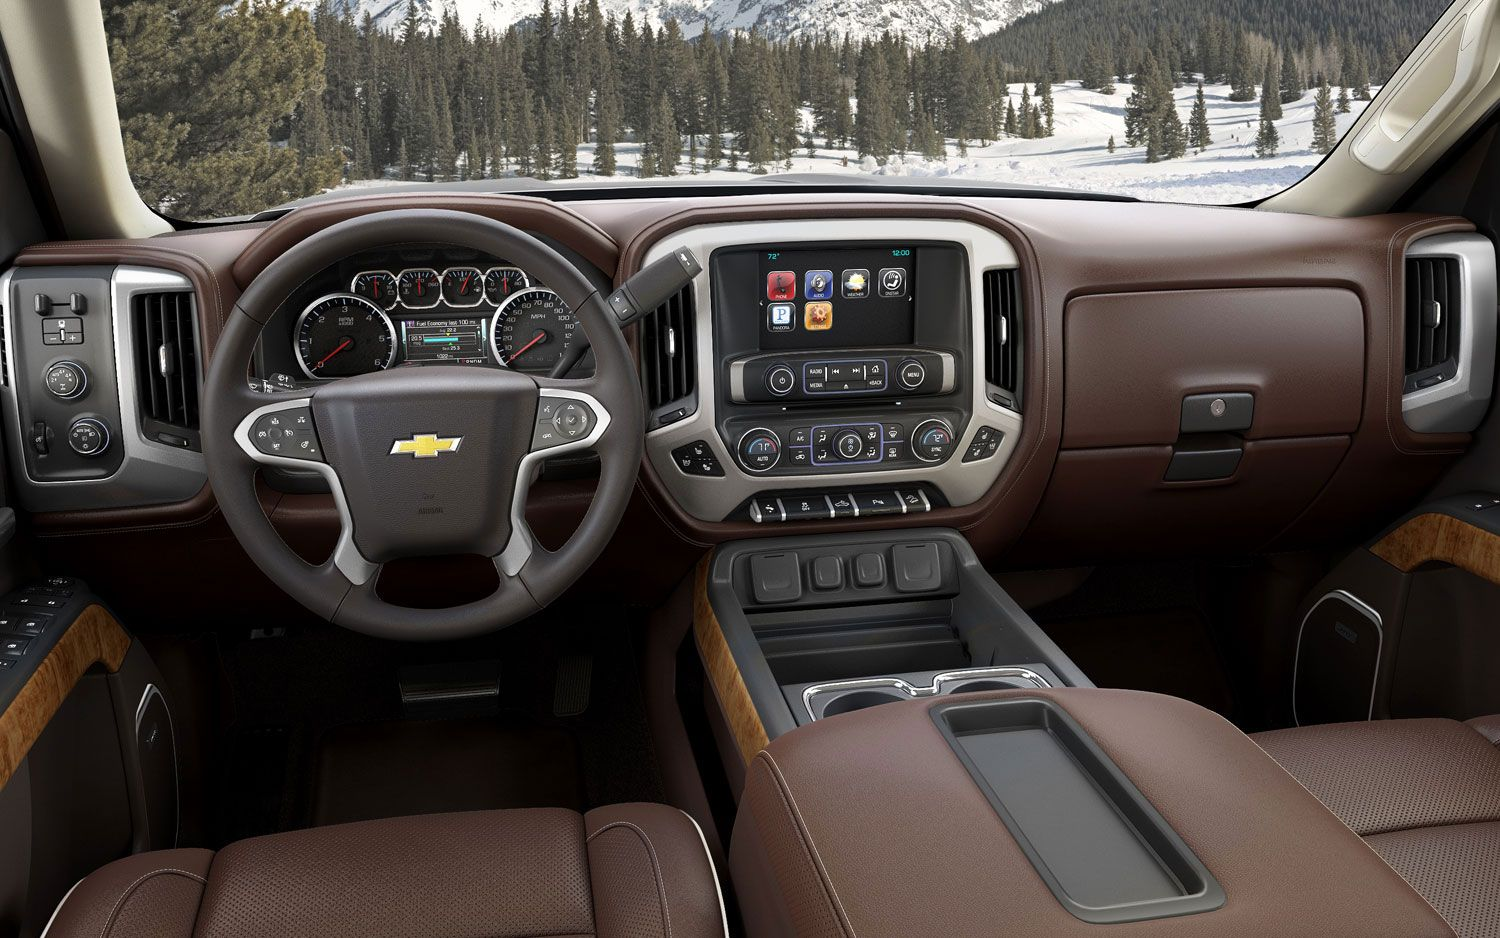 2014 chevrolet silverado high country interior its unique brown leather treatment looks and feels worthy of the premium price